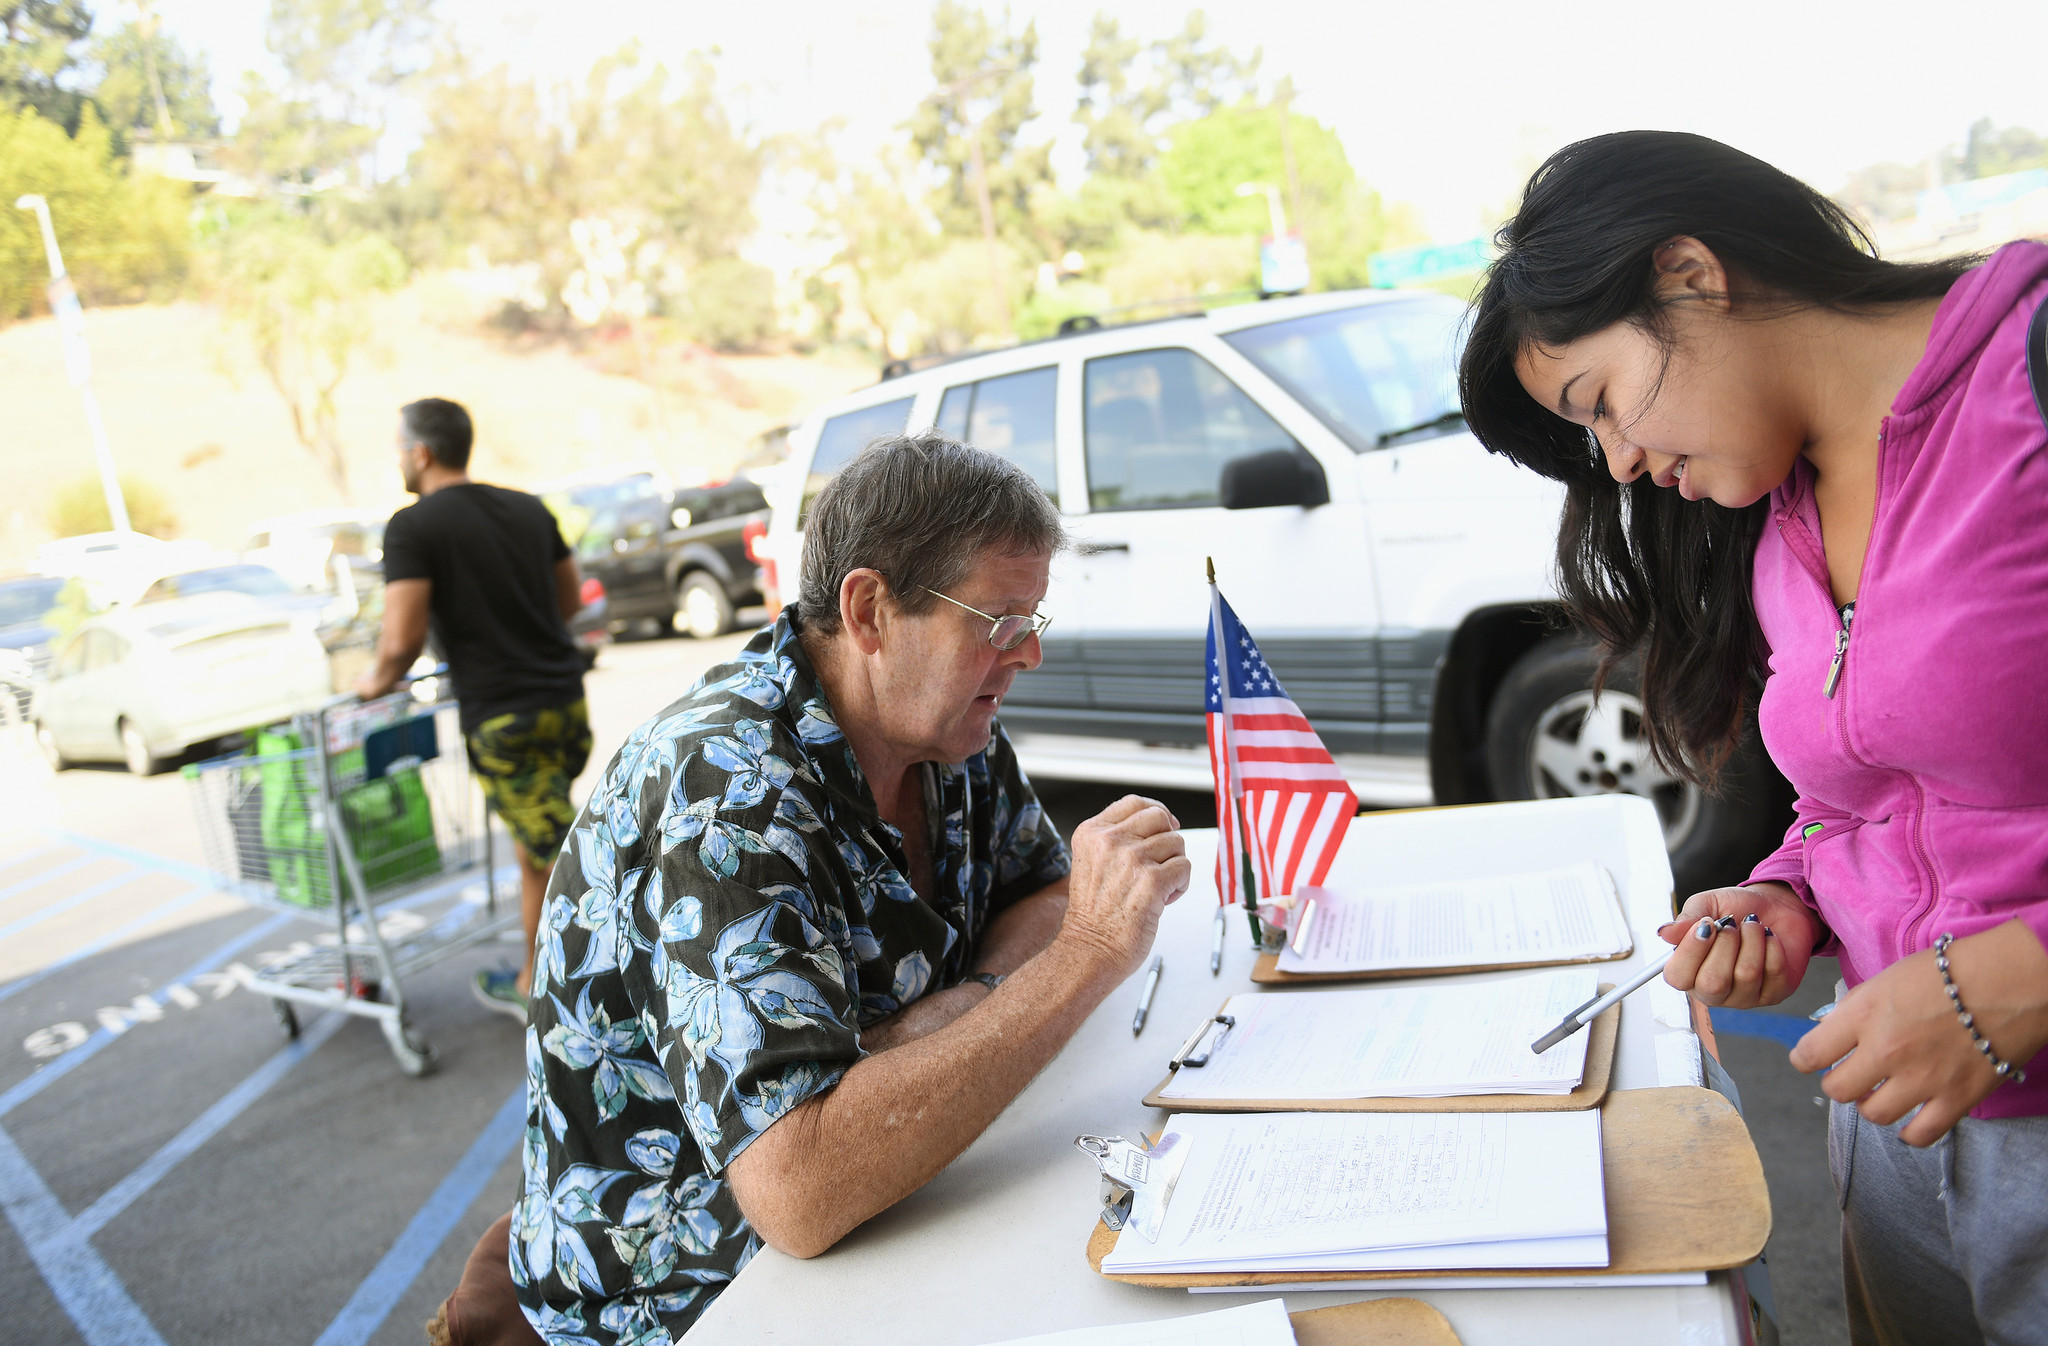 Tim Ecker collects signatures from Antonia Lopez, 19, in Silver Lake. Ecker says he made as much as $3,000 a week during peak season this year.